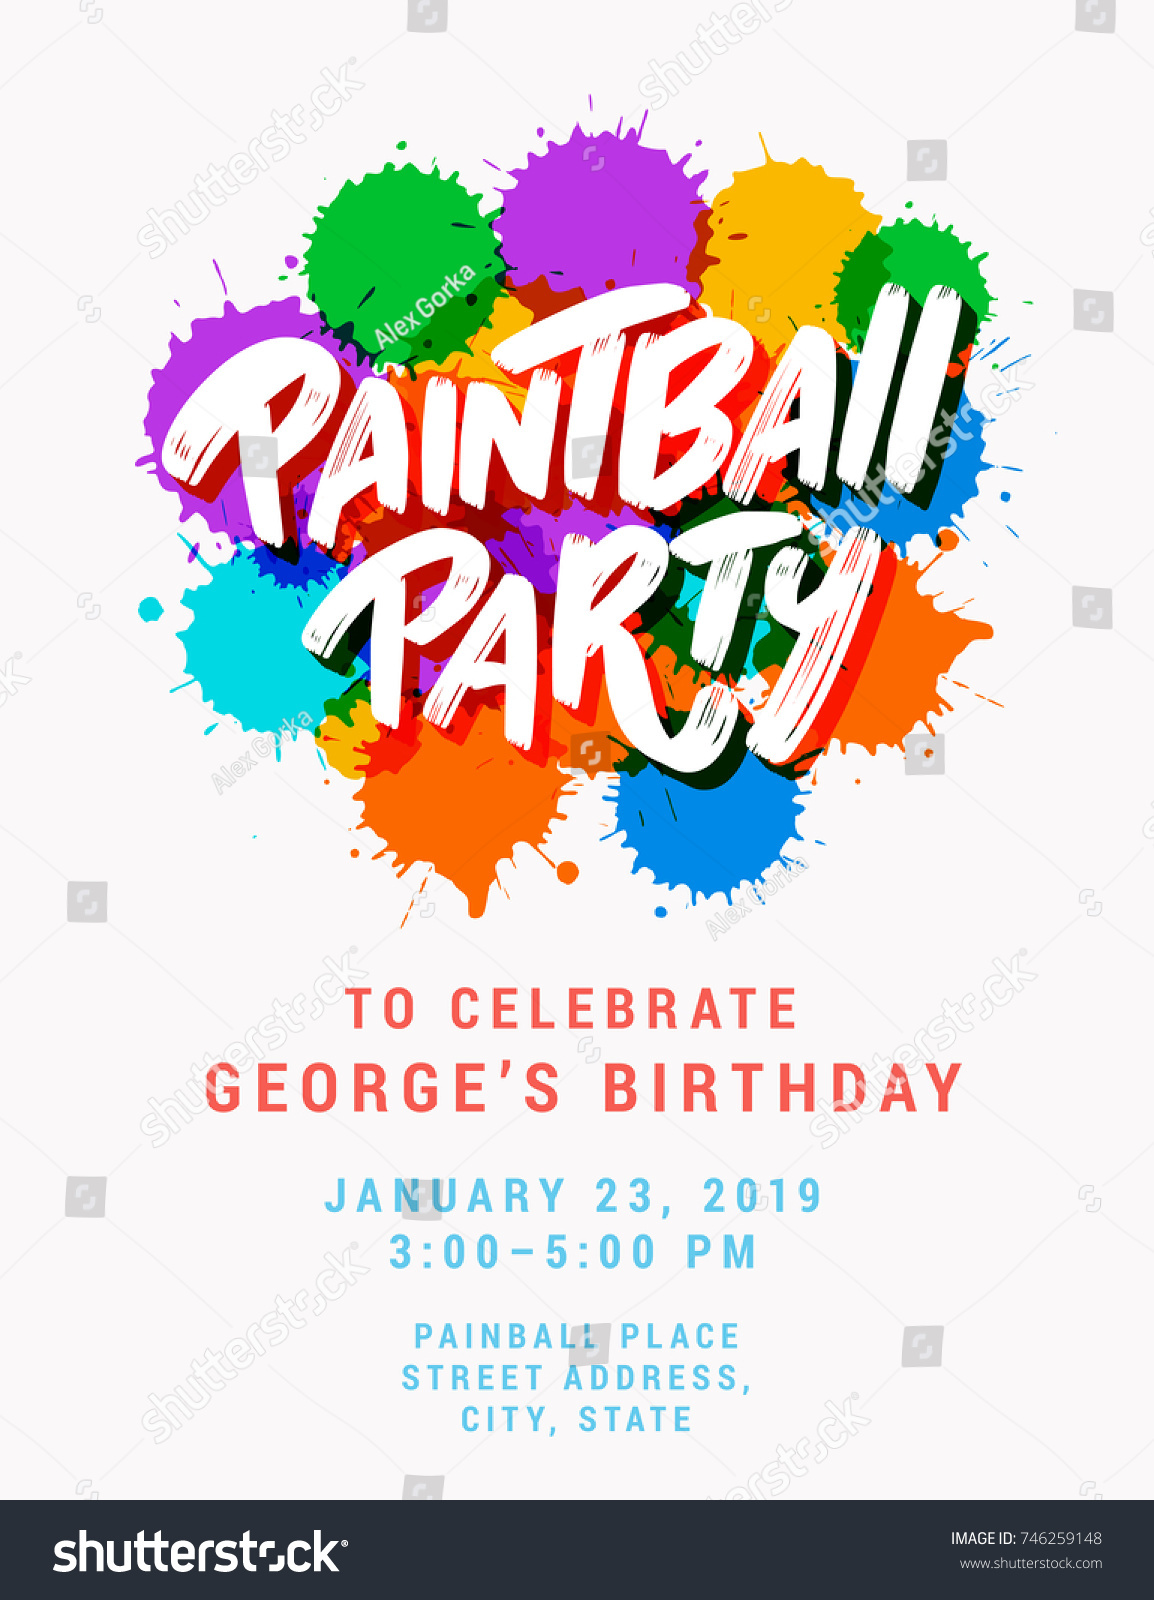 Paintball Party Invitation Template Stock Vector 746259148 ...